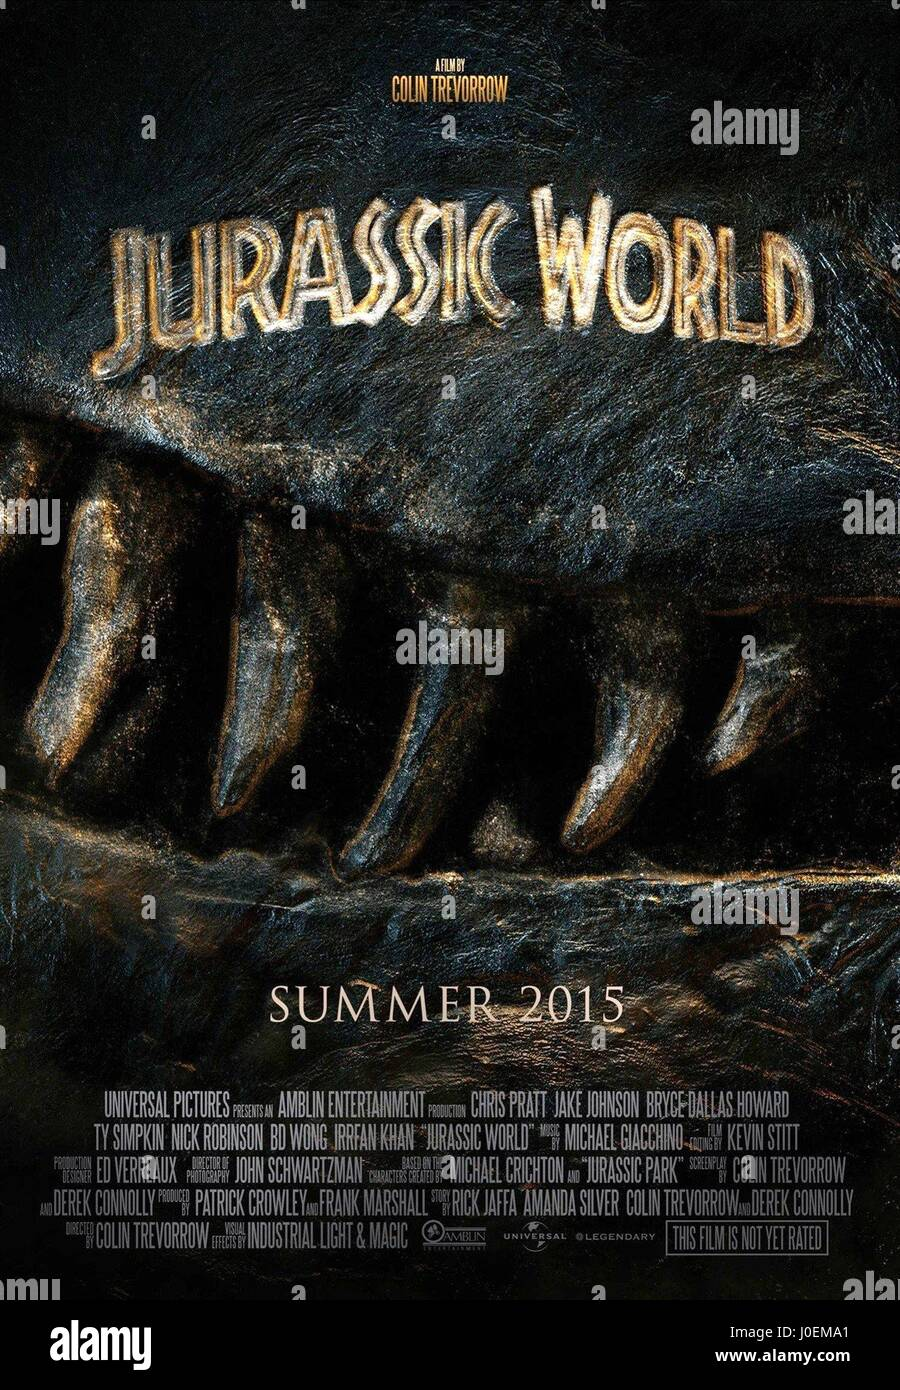 Movie Poster Jurassic World 2015 Stock Photo Alamy